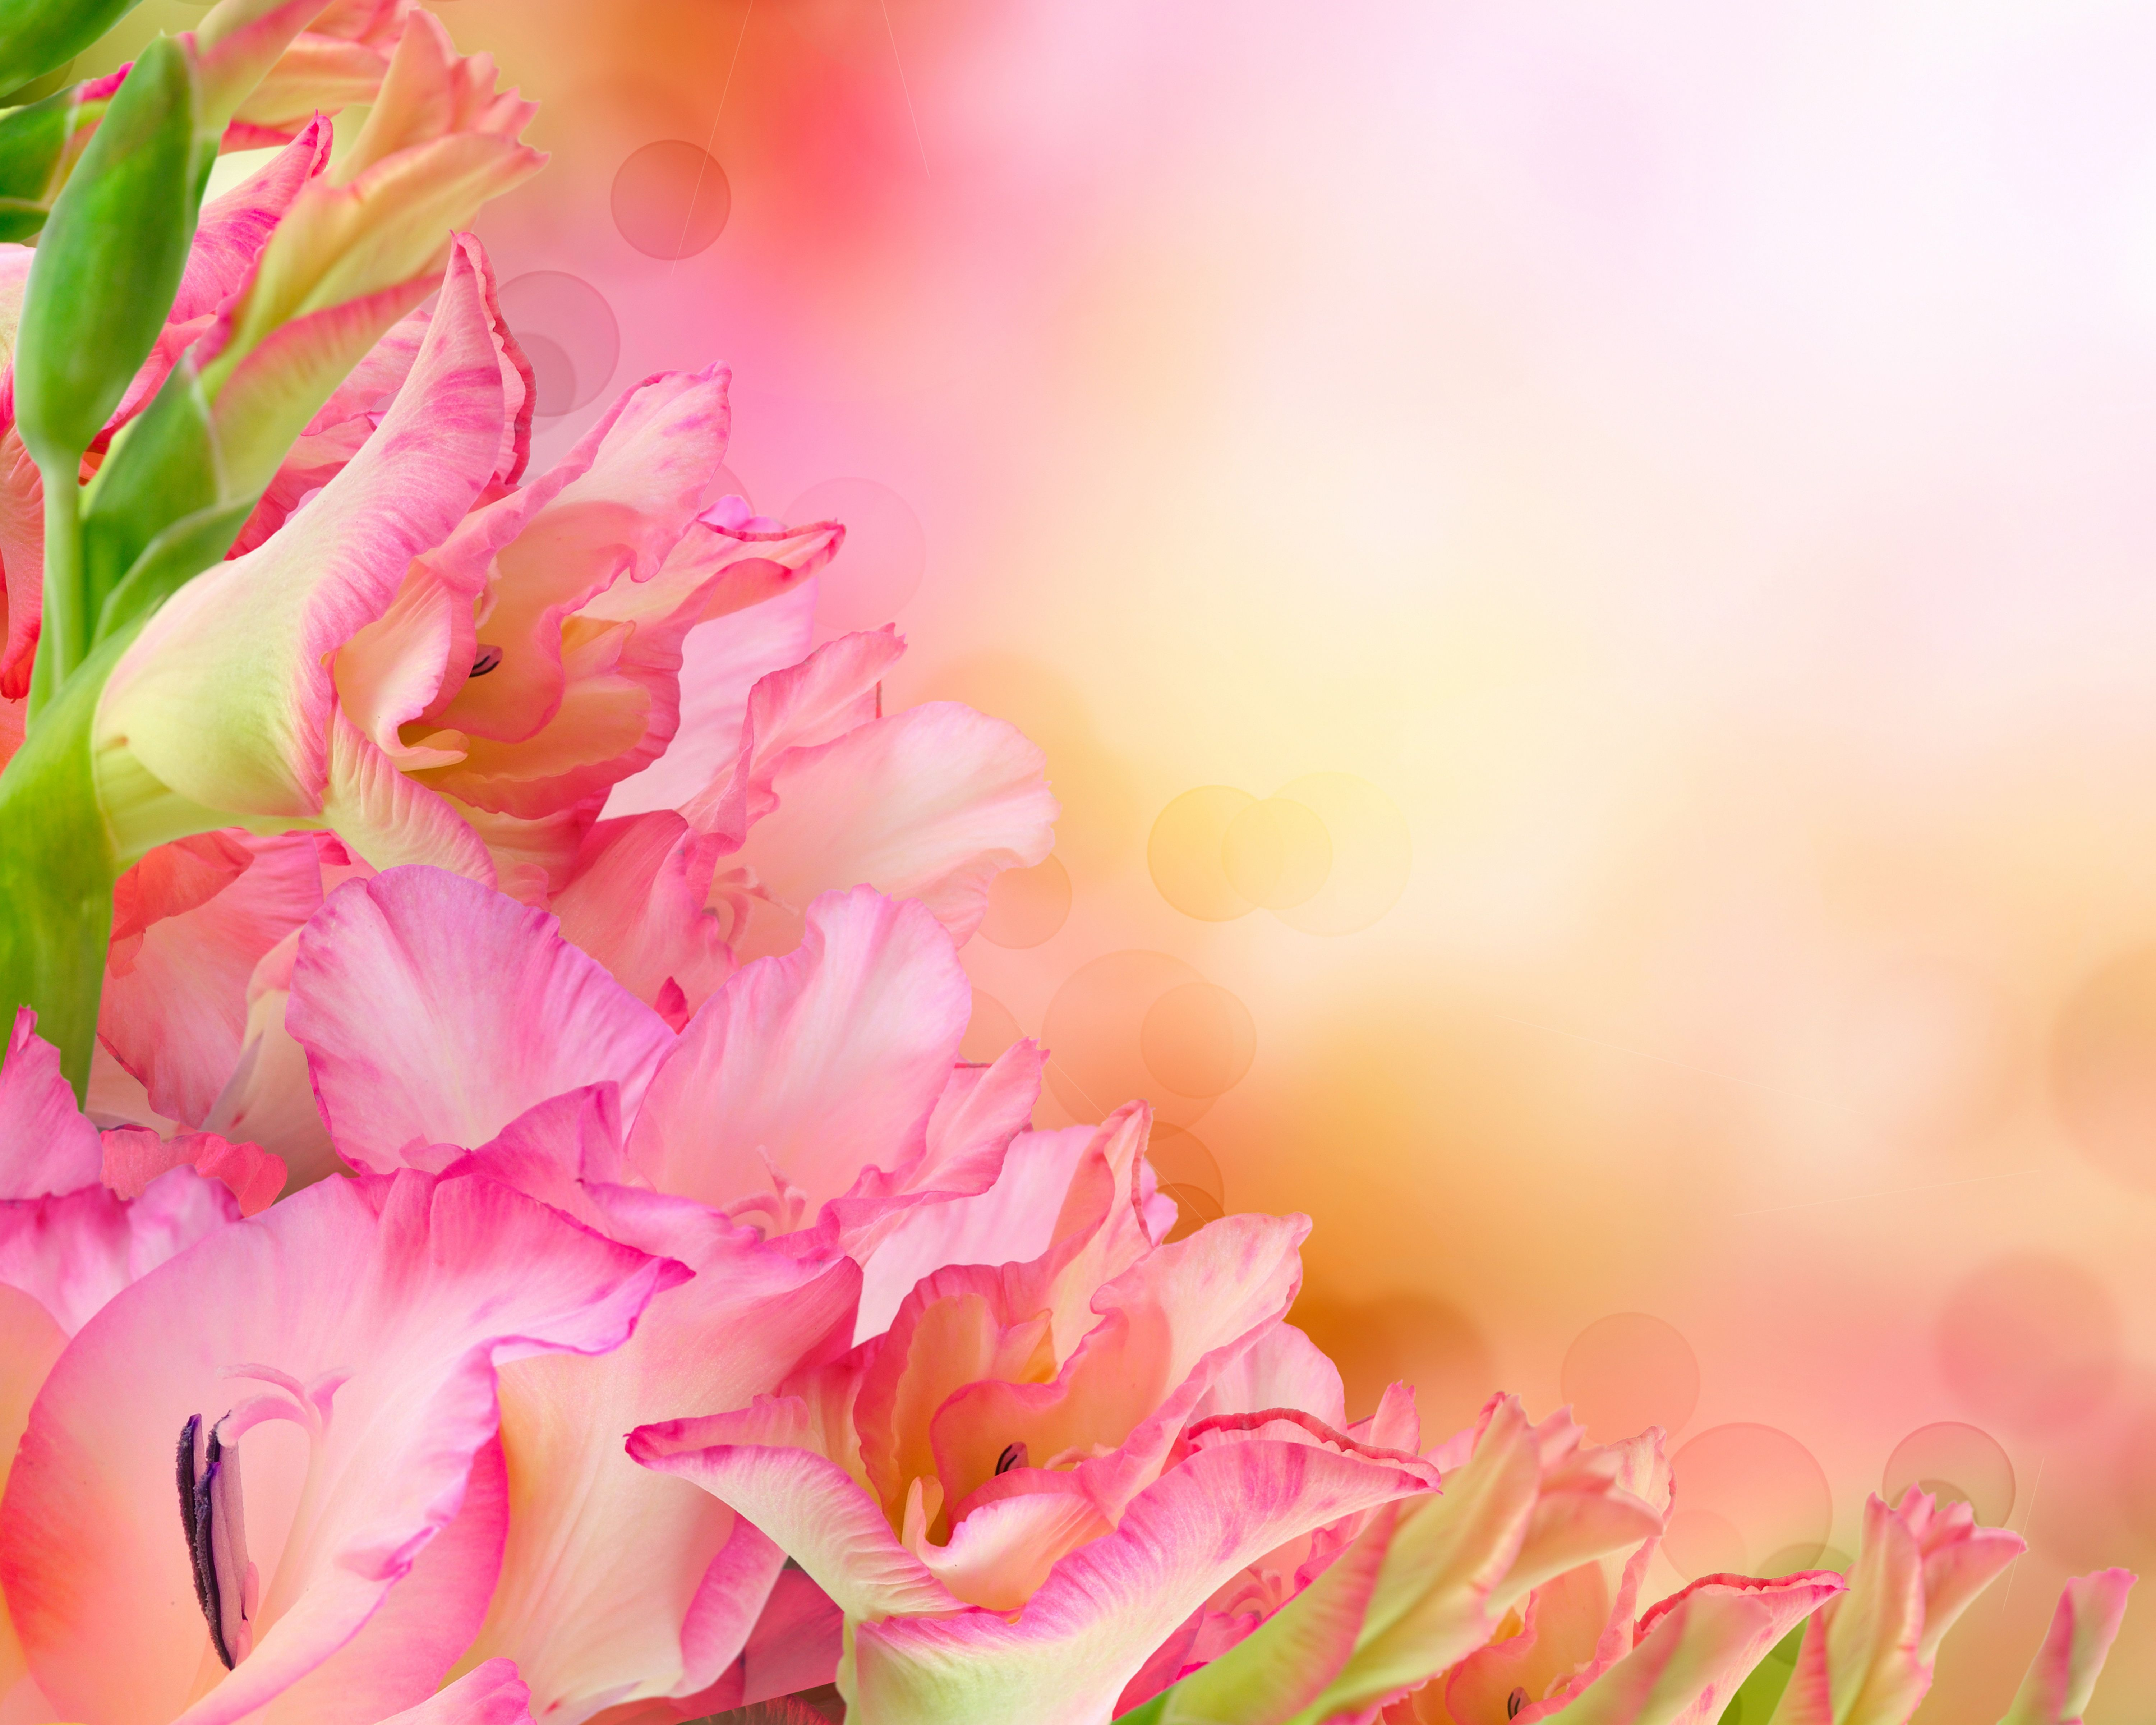 6000x4800 Wallpaper Pink color Flowers Gladioluses Closeup 6000x4800